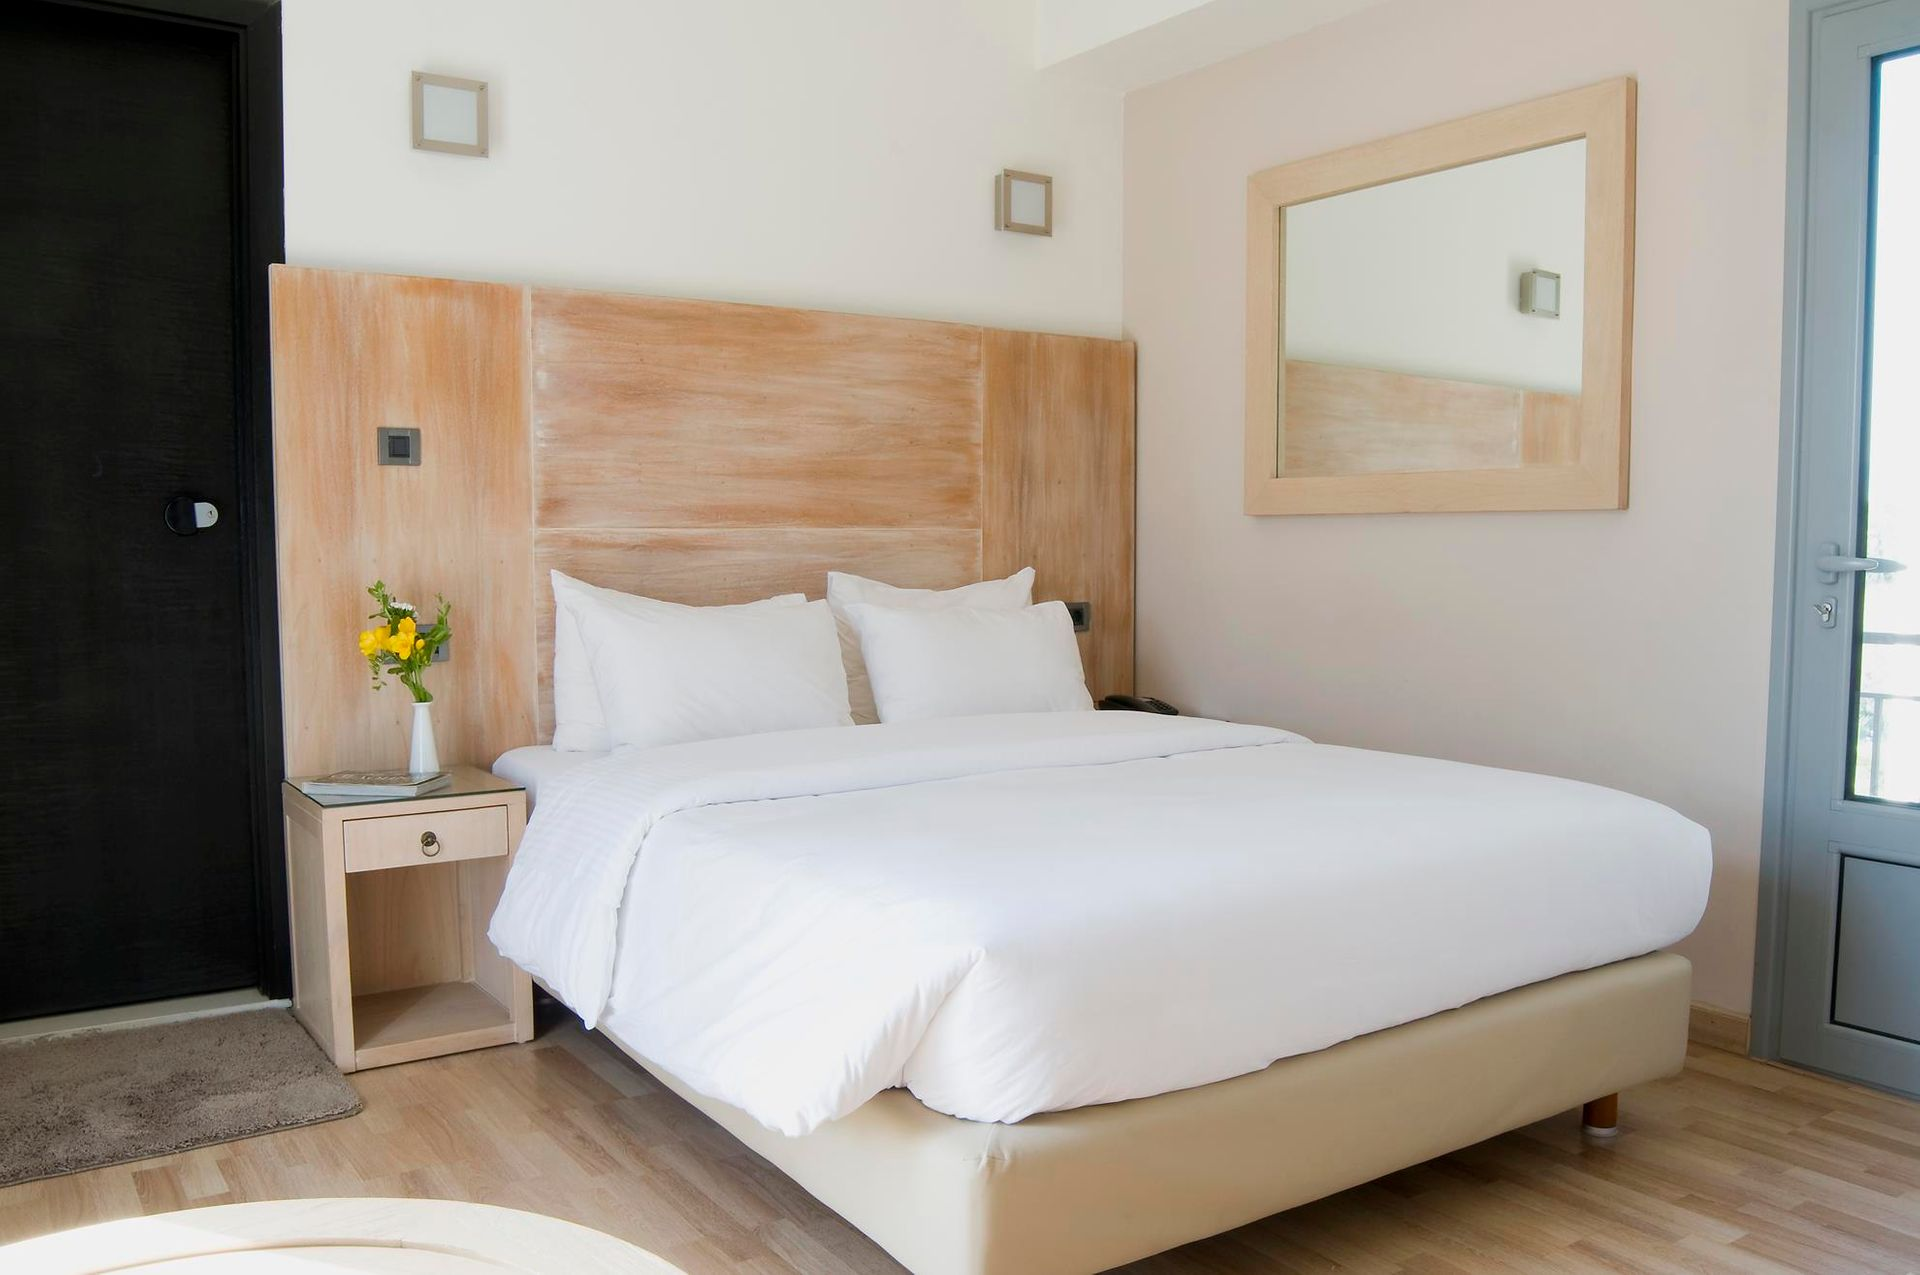 Areos Hotel Athens - Αθήνα ✦ 2 Ημέρες (1 Διανυκτέρευση)